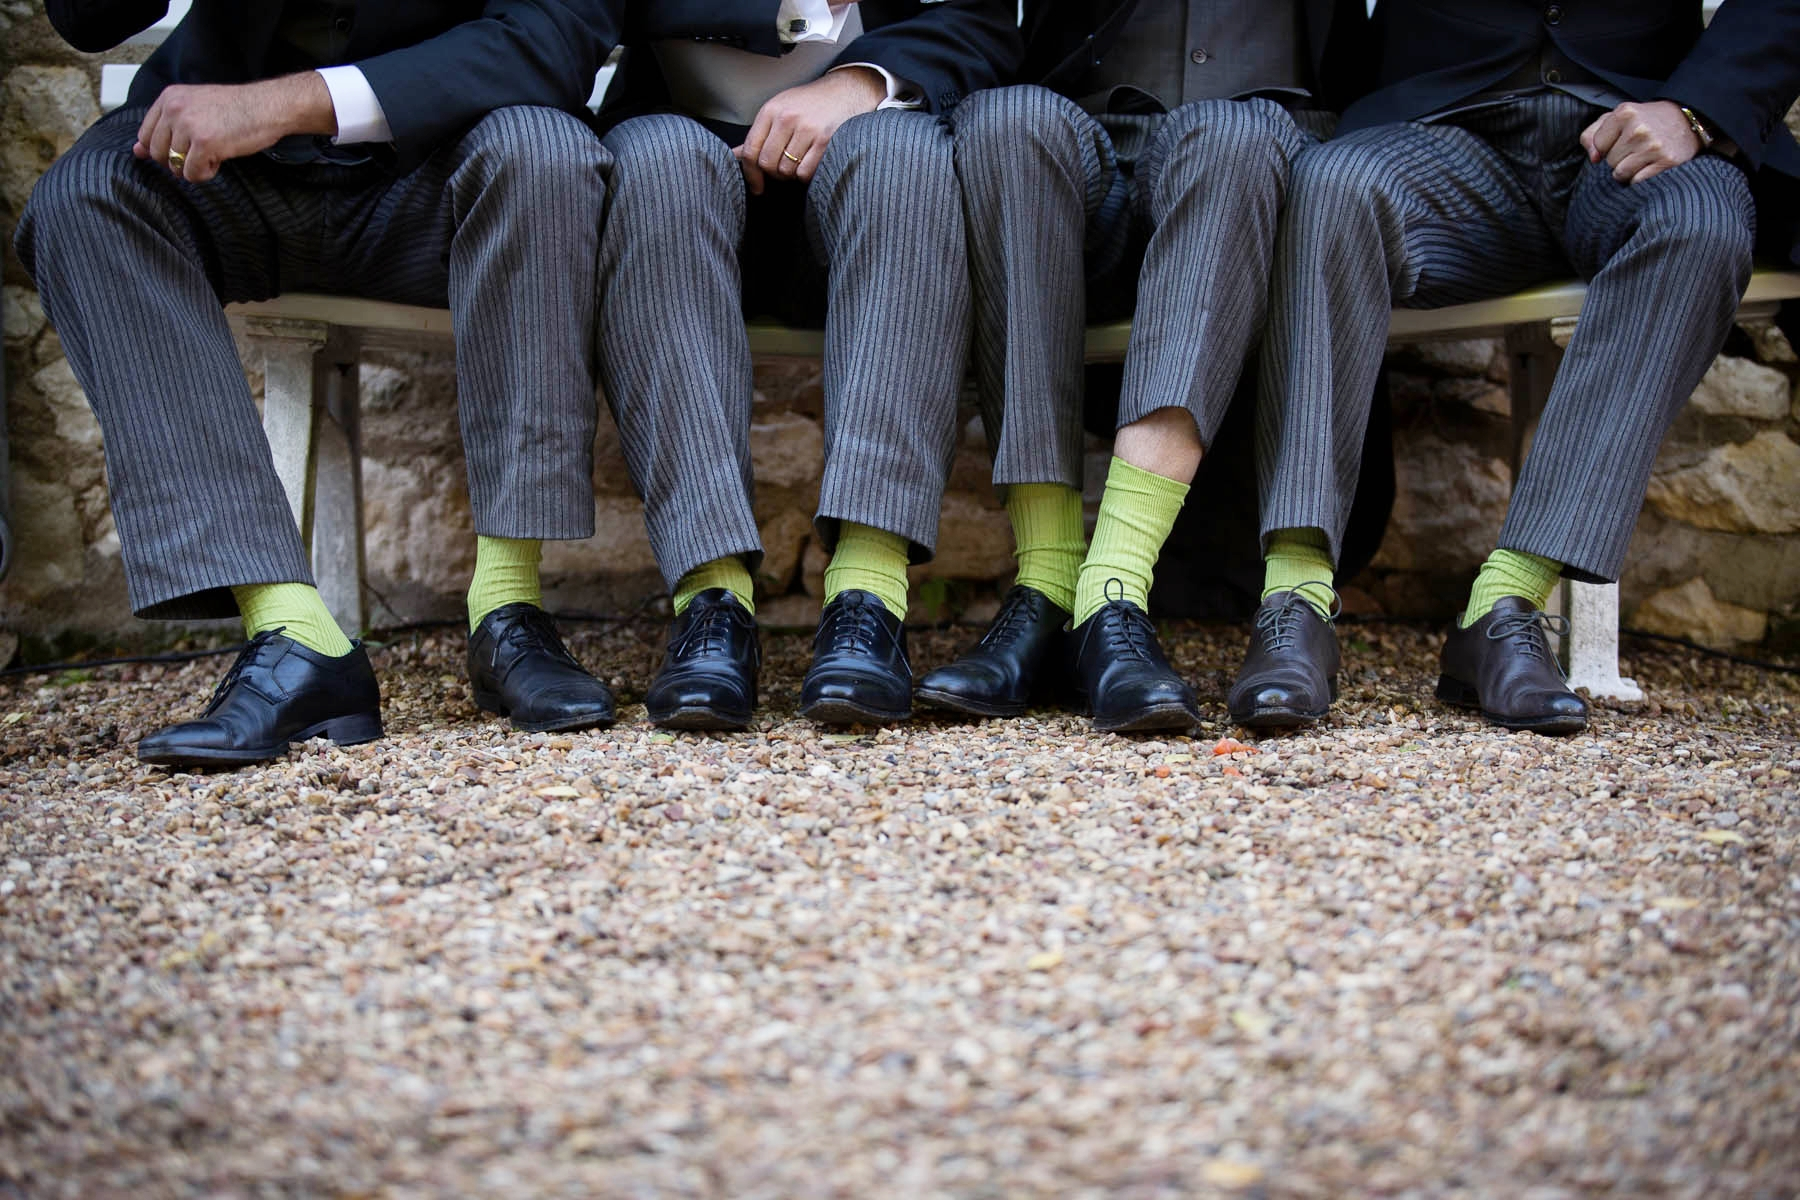 Mariage Chaussette